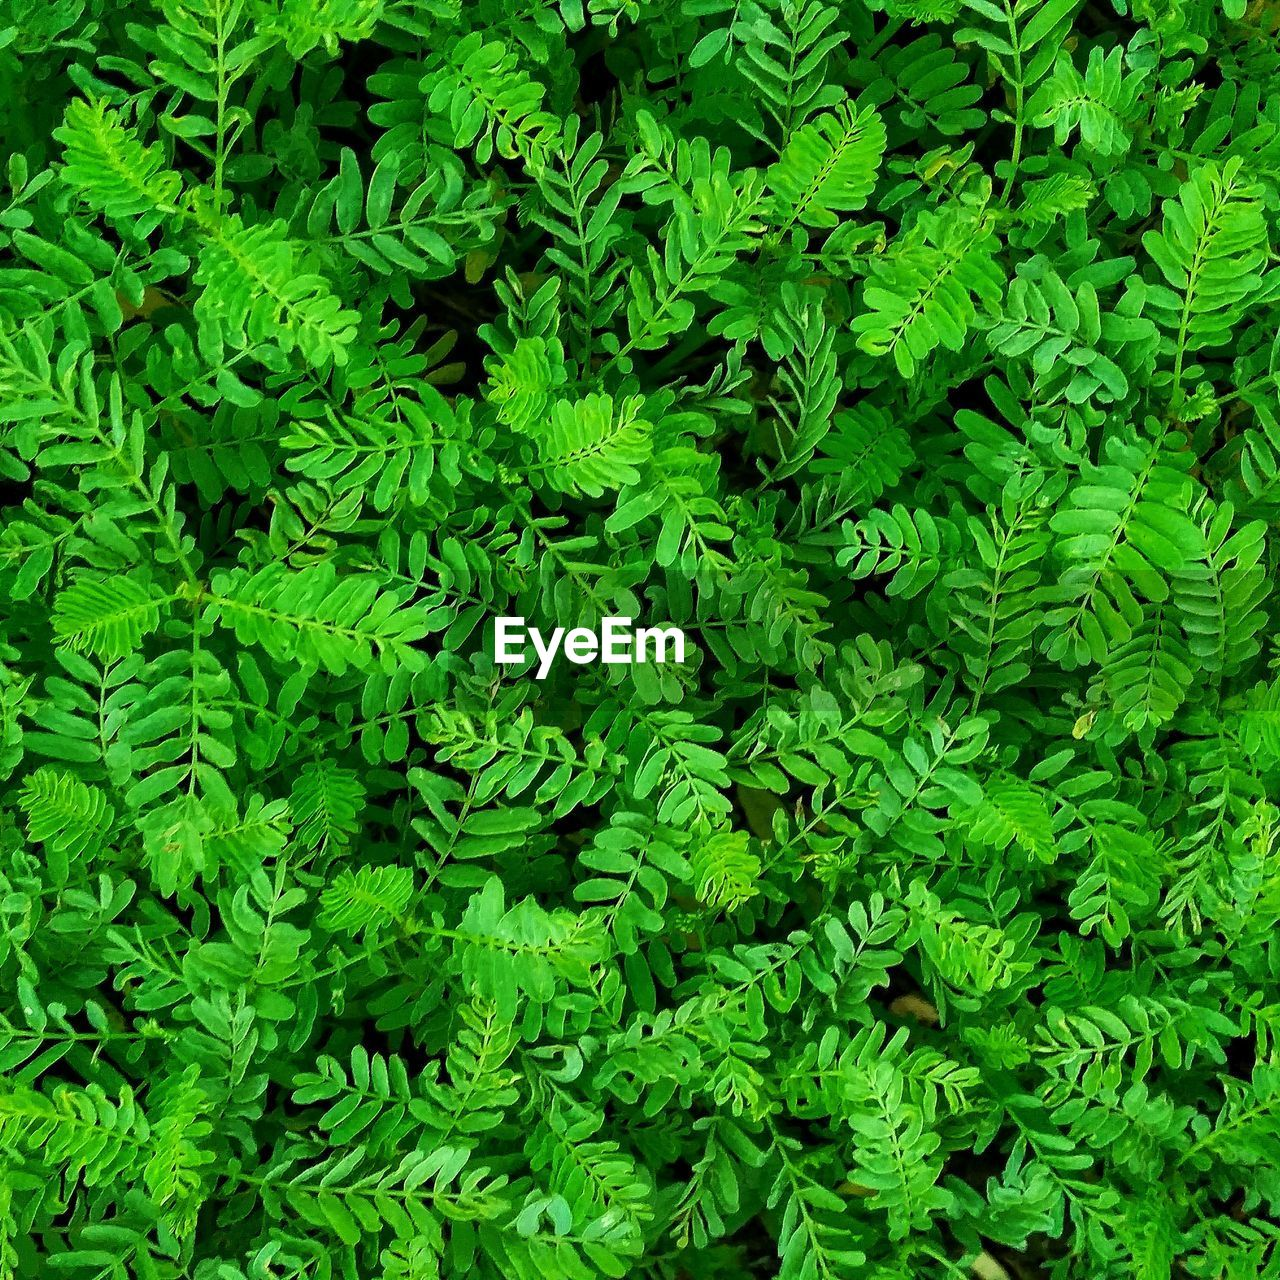 green color, full frame, growth, plant, backgrounds, plant part, leaf, no people, nature, foliage, day, lush foliage, beauty in nature, high angle view, close-up, freshness, food and drink, herb, botany, vegetable